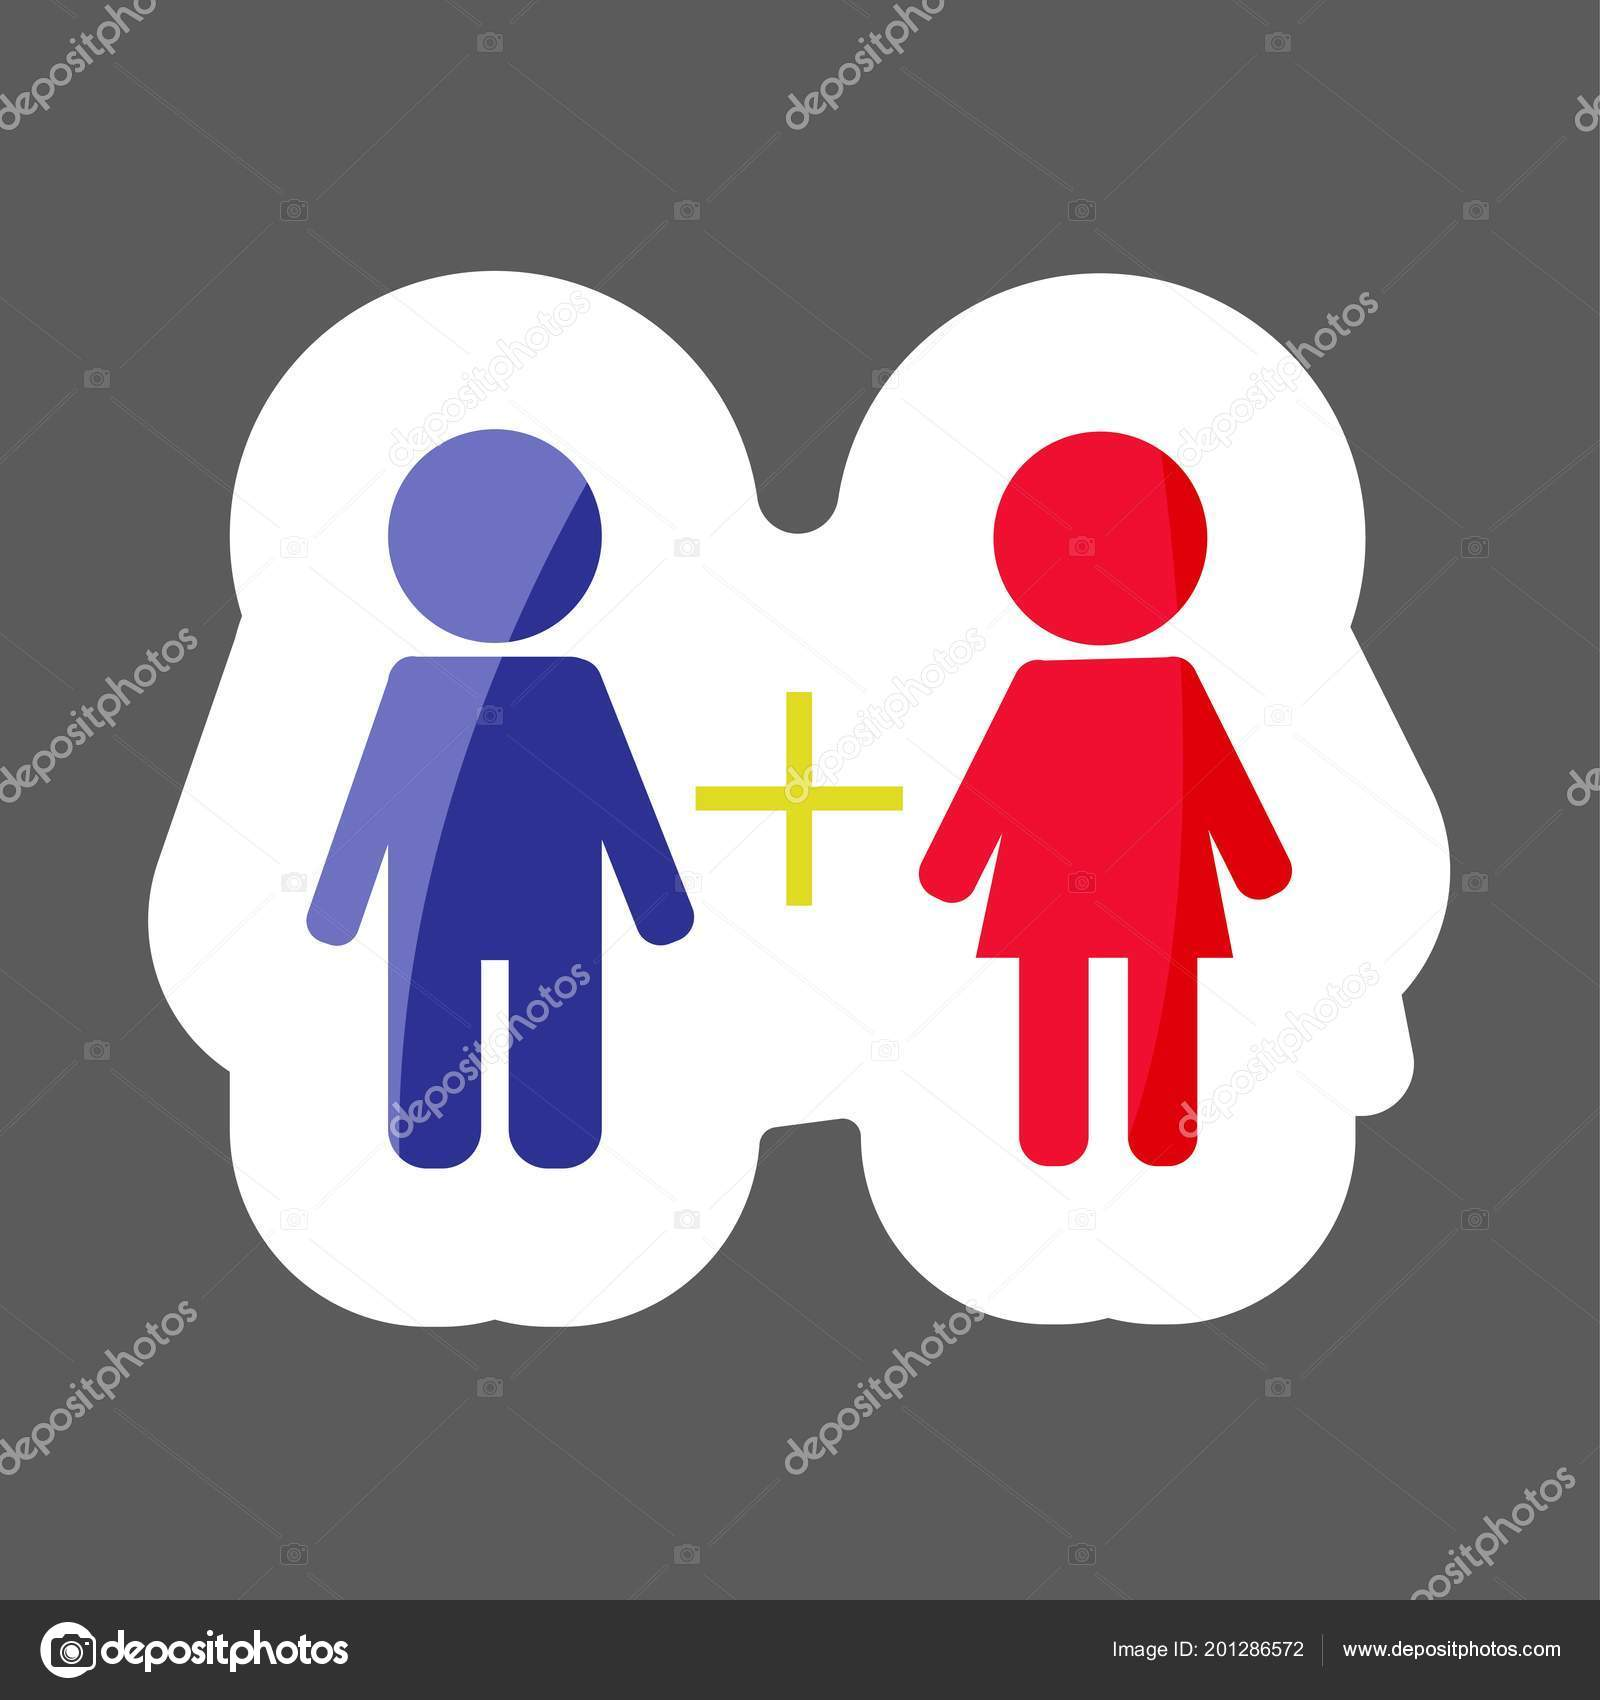 Vector Icon Colored Sticker Friendship Male Female Connections